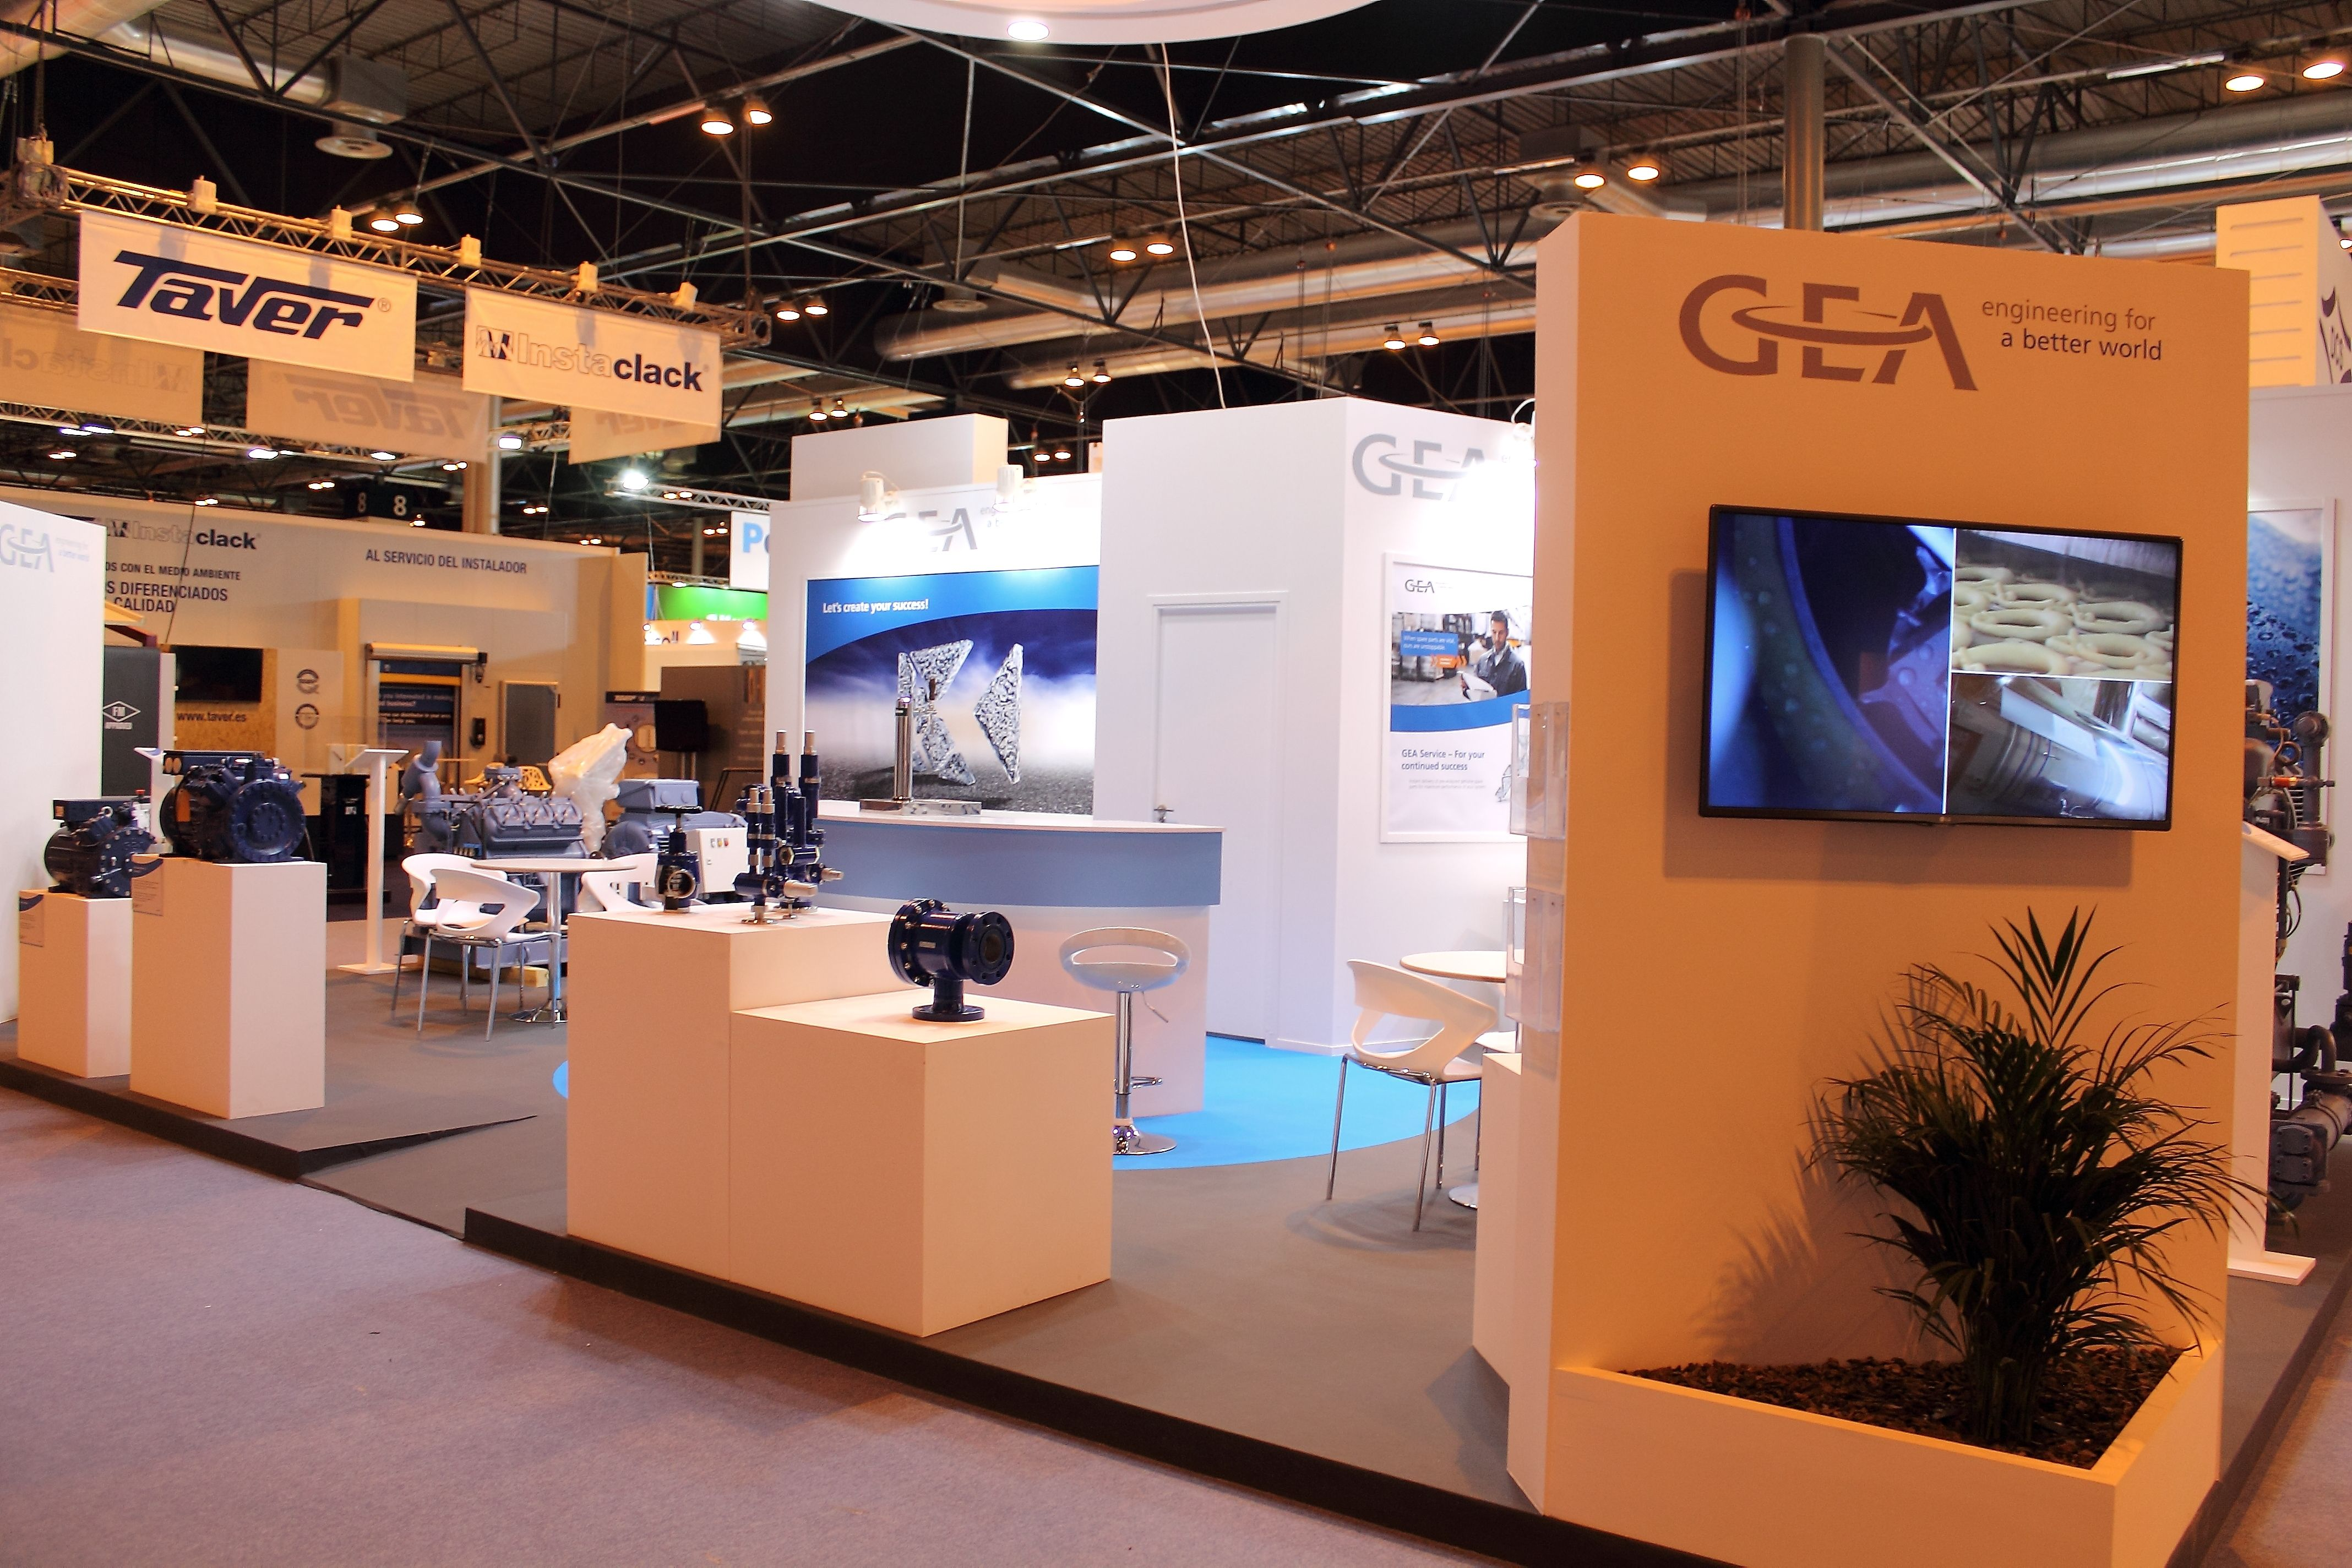 Stand for GEA Engineering at CLIMATIZACION